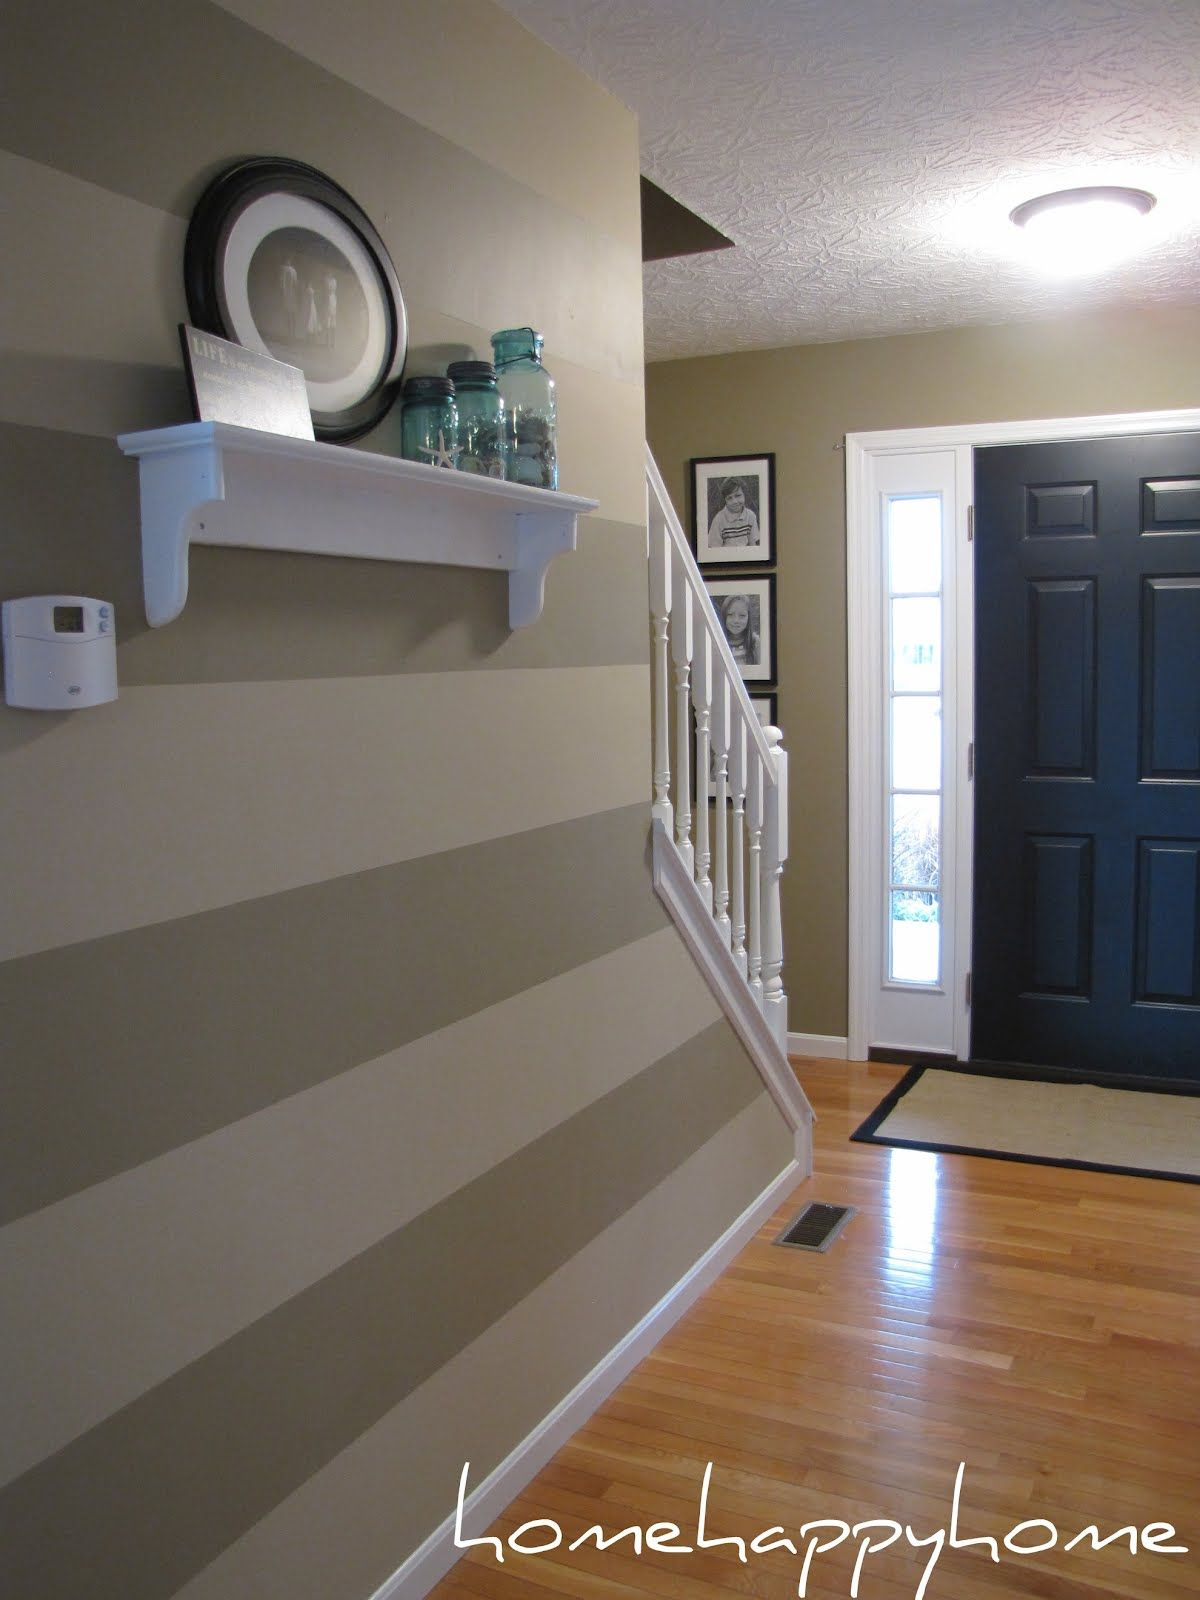 Valspar barnwood and valspar khaki stripe paint colors Valspar interior paint colors